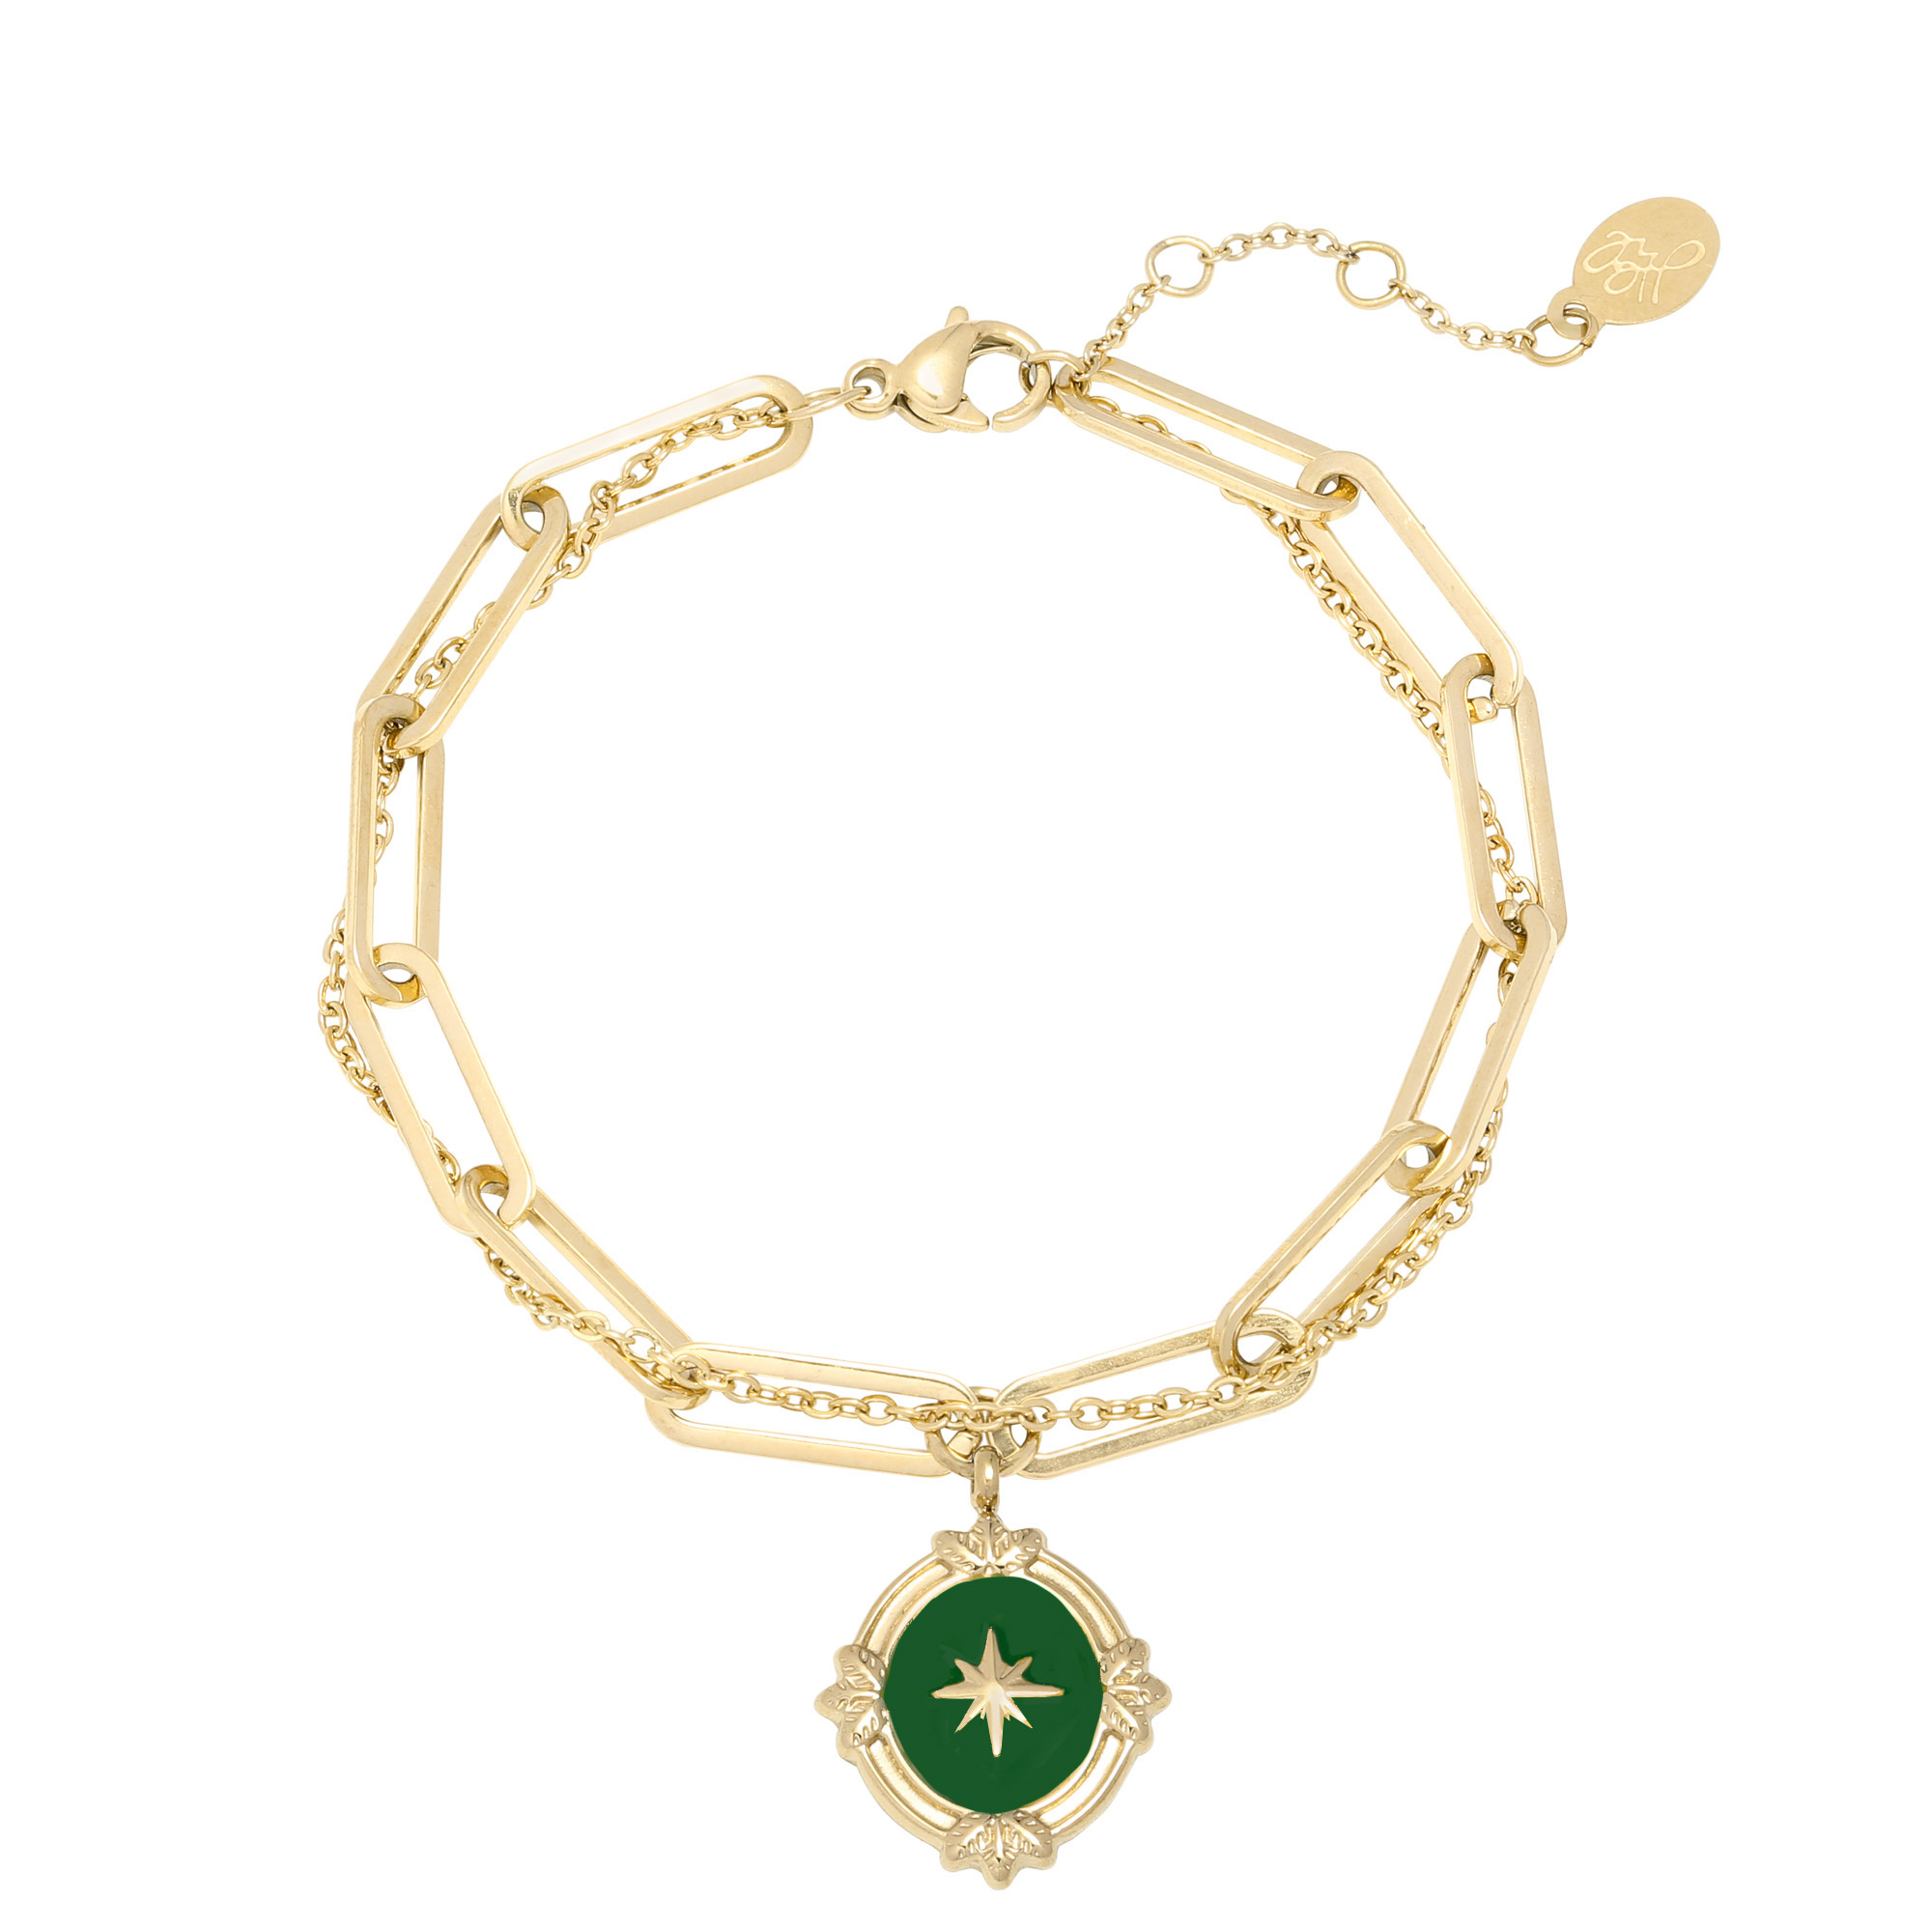 Bracelet Thick and Thin - Northern Star